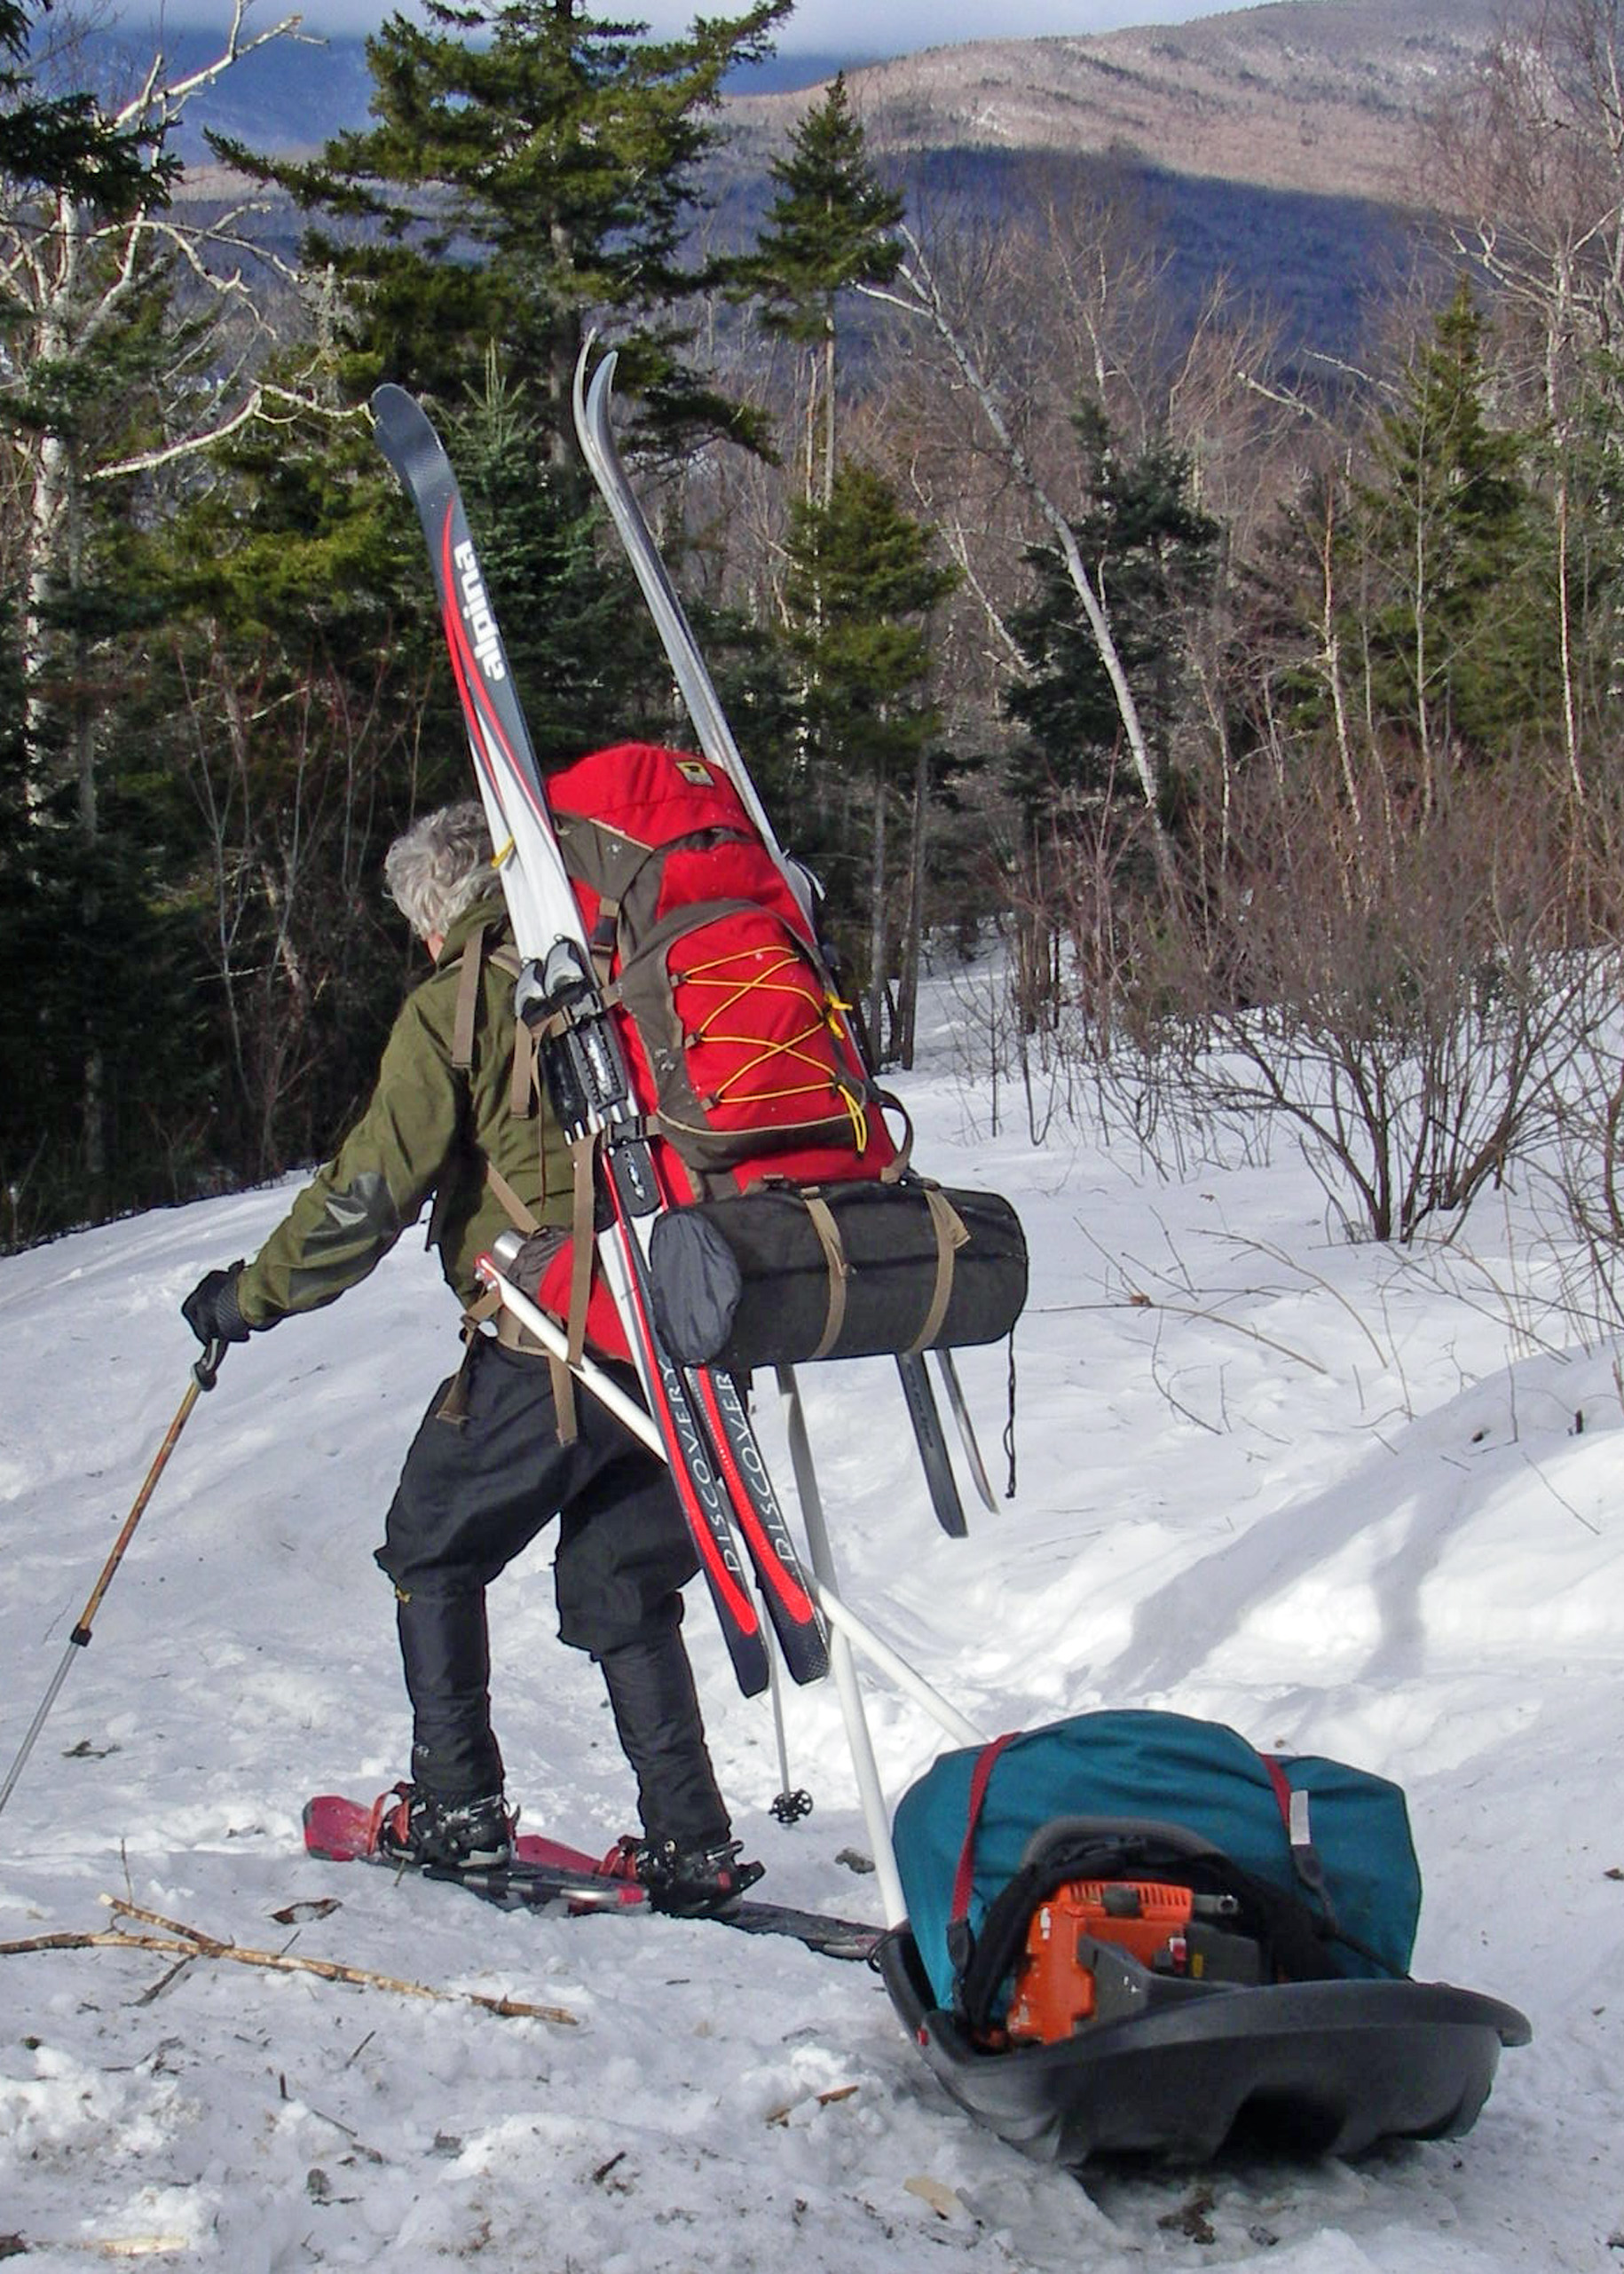 Winter gear weighs more, takes up more space. You need better ways to carry the load.